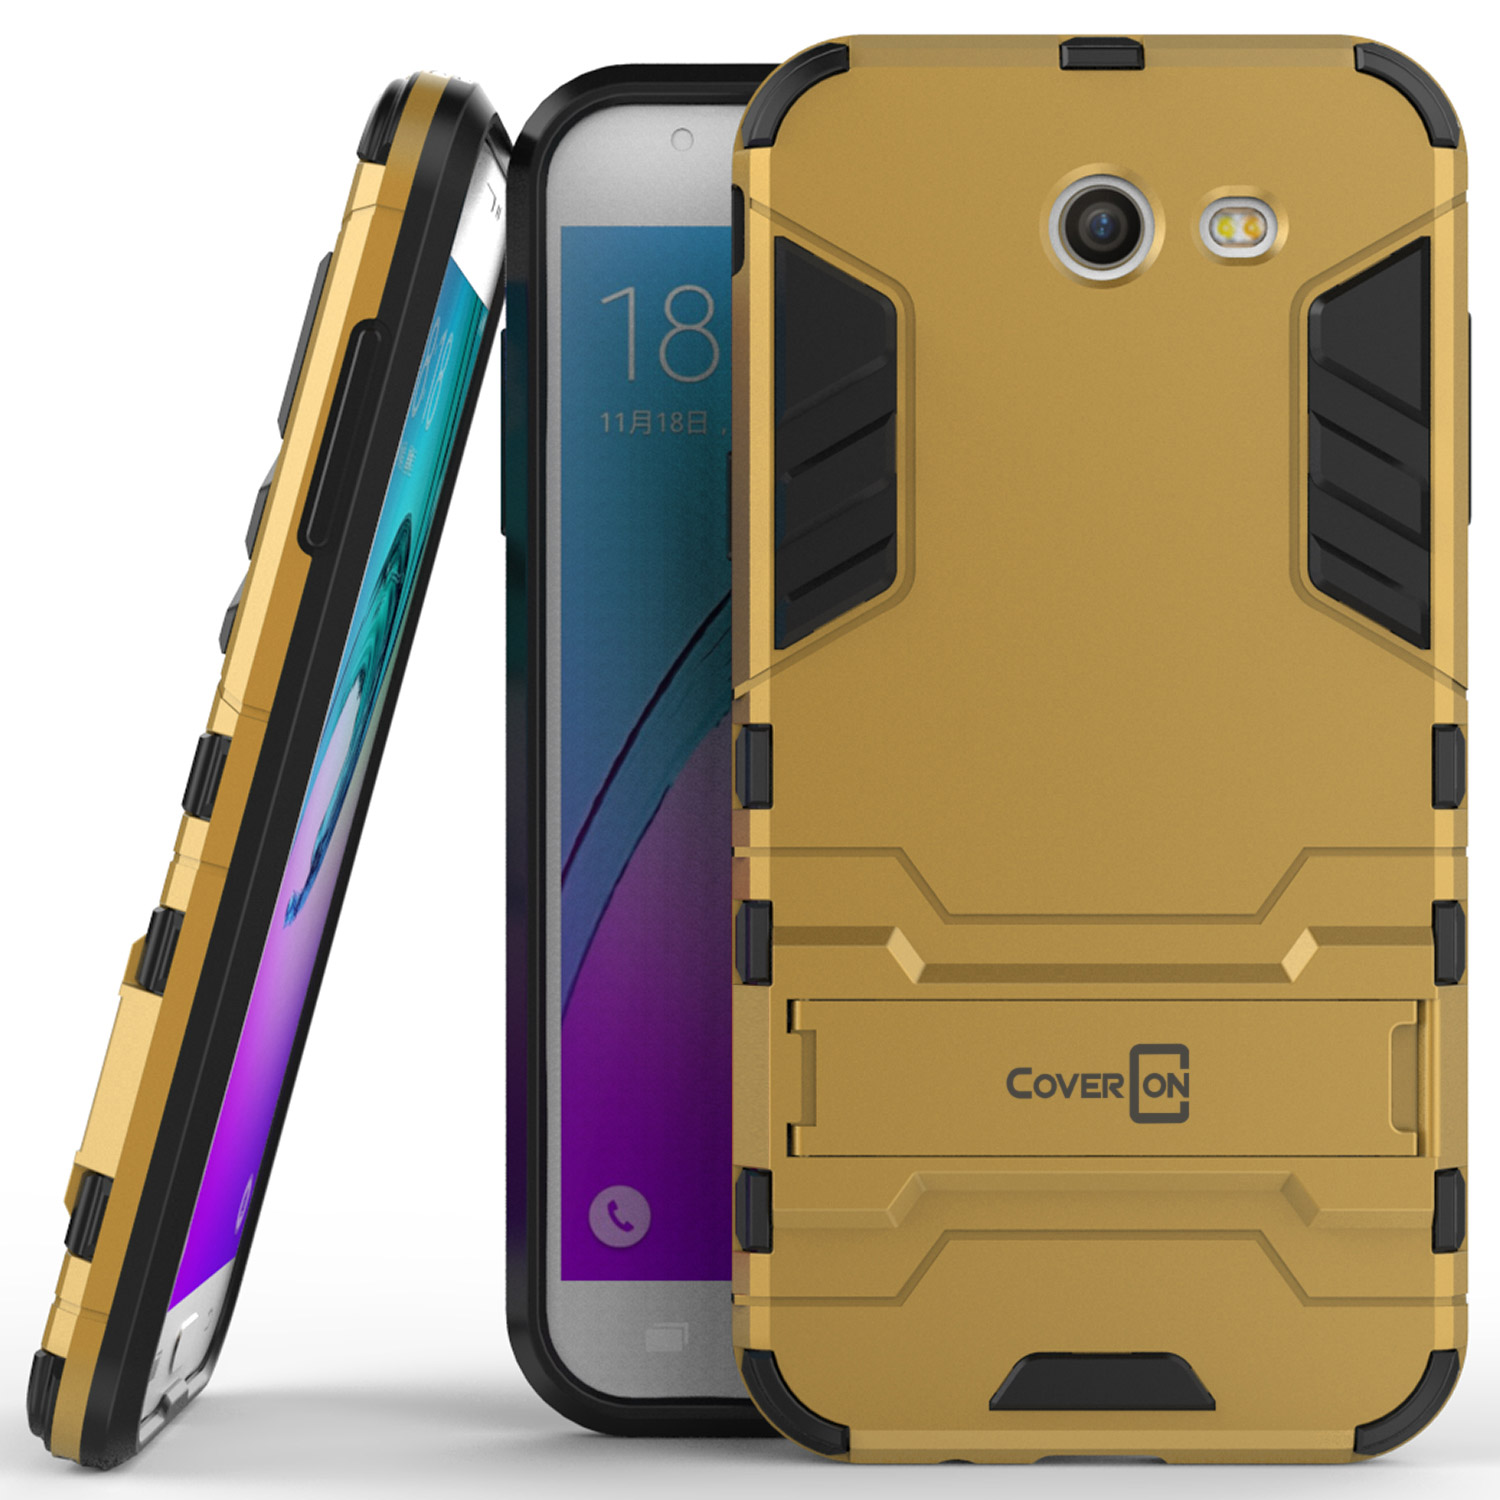 reputable site 709a8 2788c Details about For Samsung Galaxy J3 Luna Pro / J3 Eclipse Case Gold  Kickstand Protective Cover